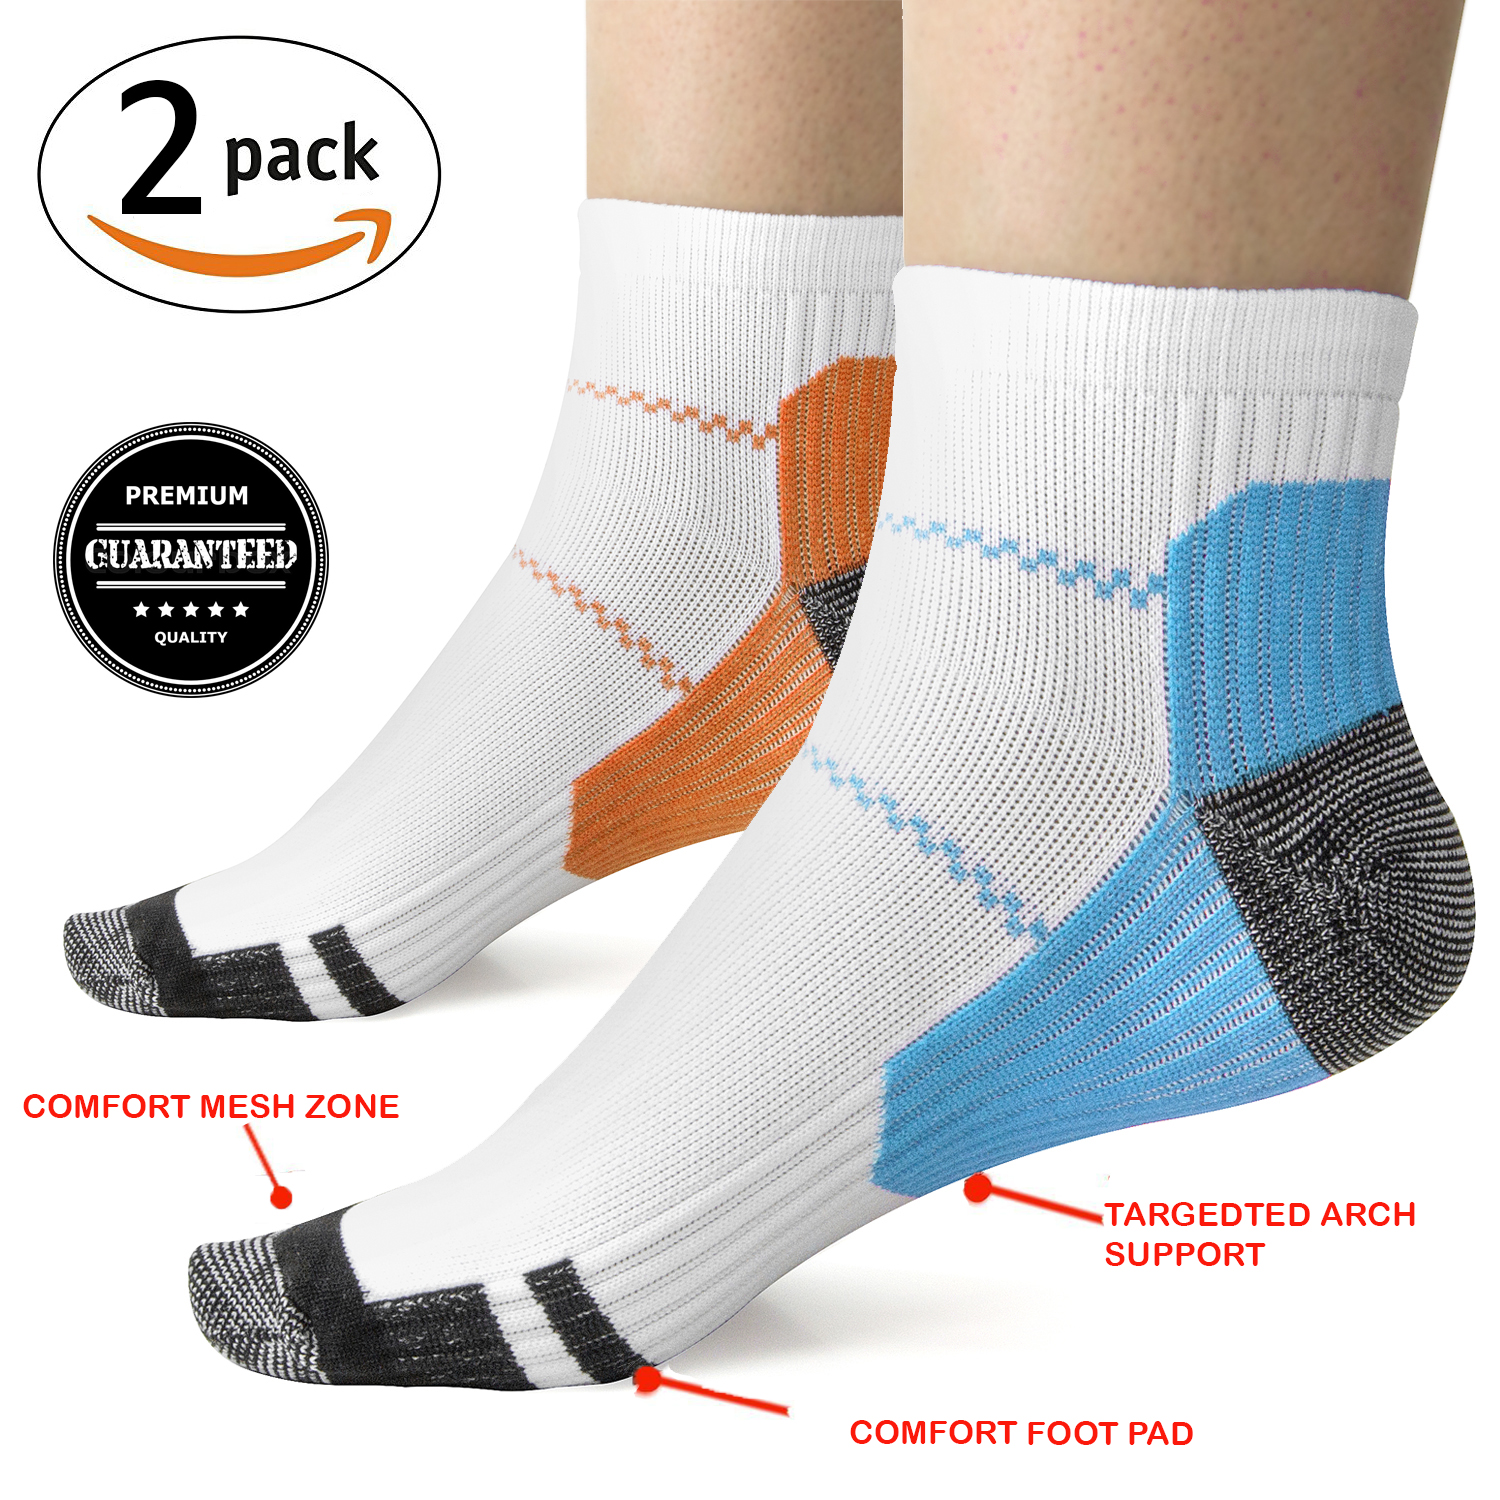 Plantar Fasciitis Socks Premium Heel, Ankle & Arch Support. Compression Sleeve with Heel Hugger to Increase Circulation - LG/XL 2PK Blue & Orange